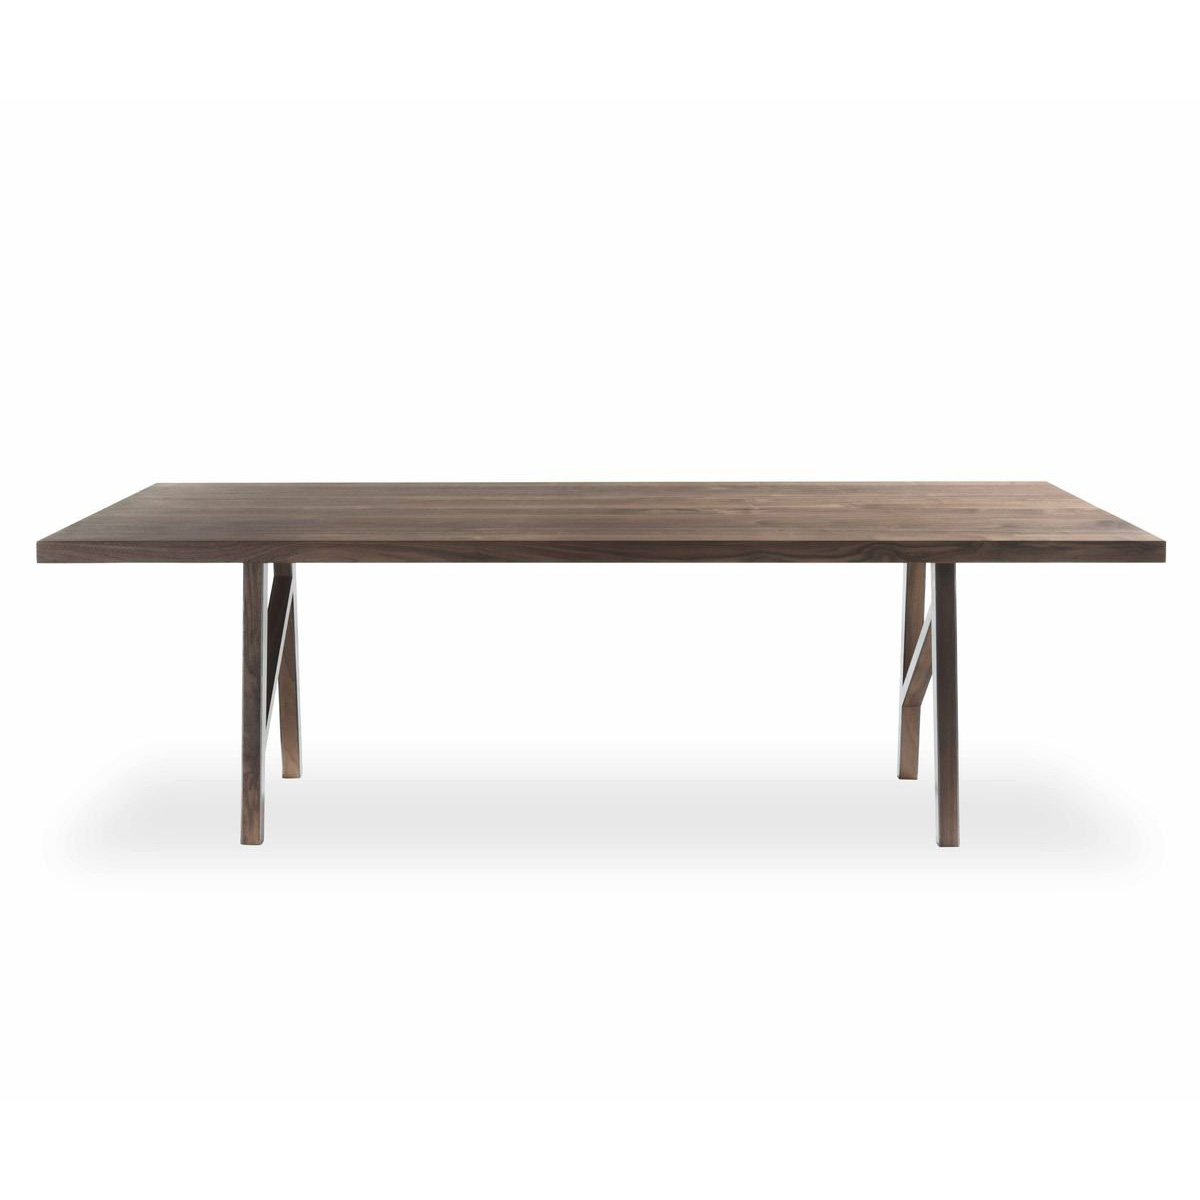 Blend dining table from Riva 1920